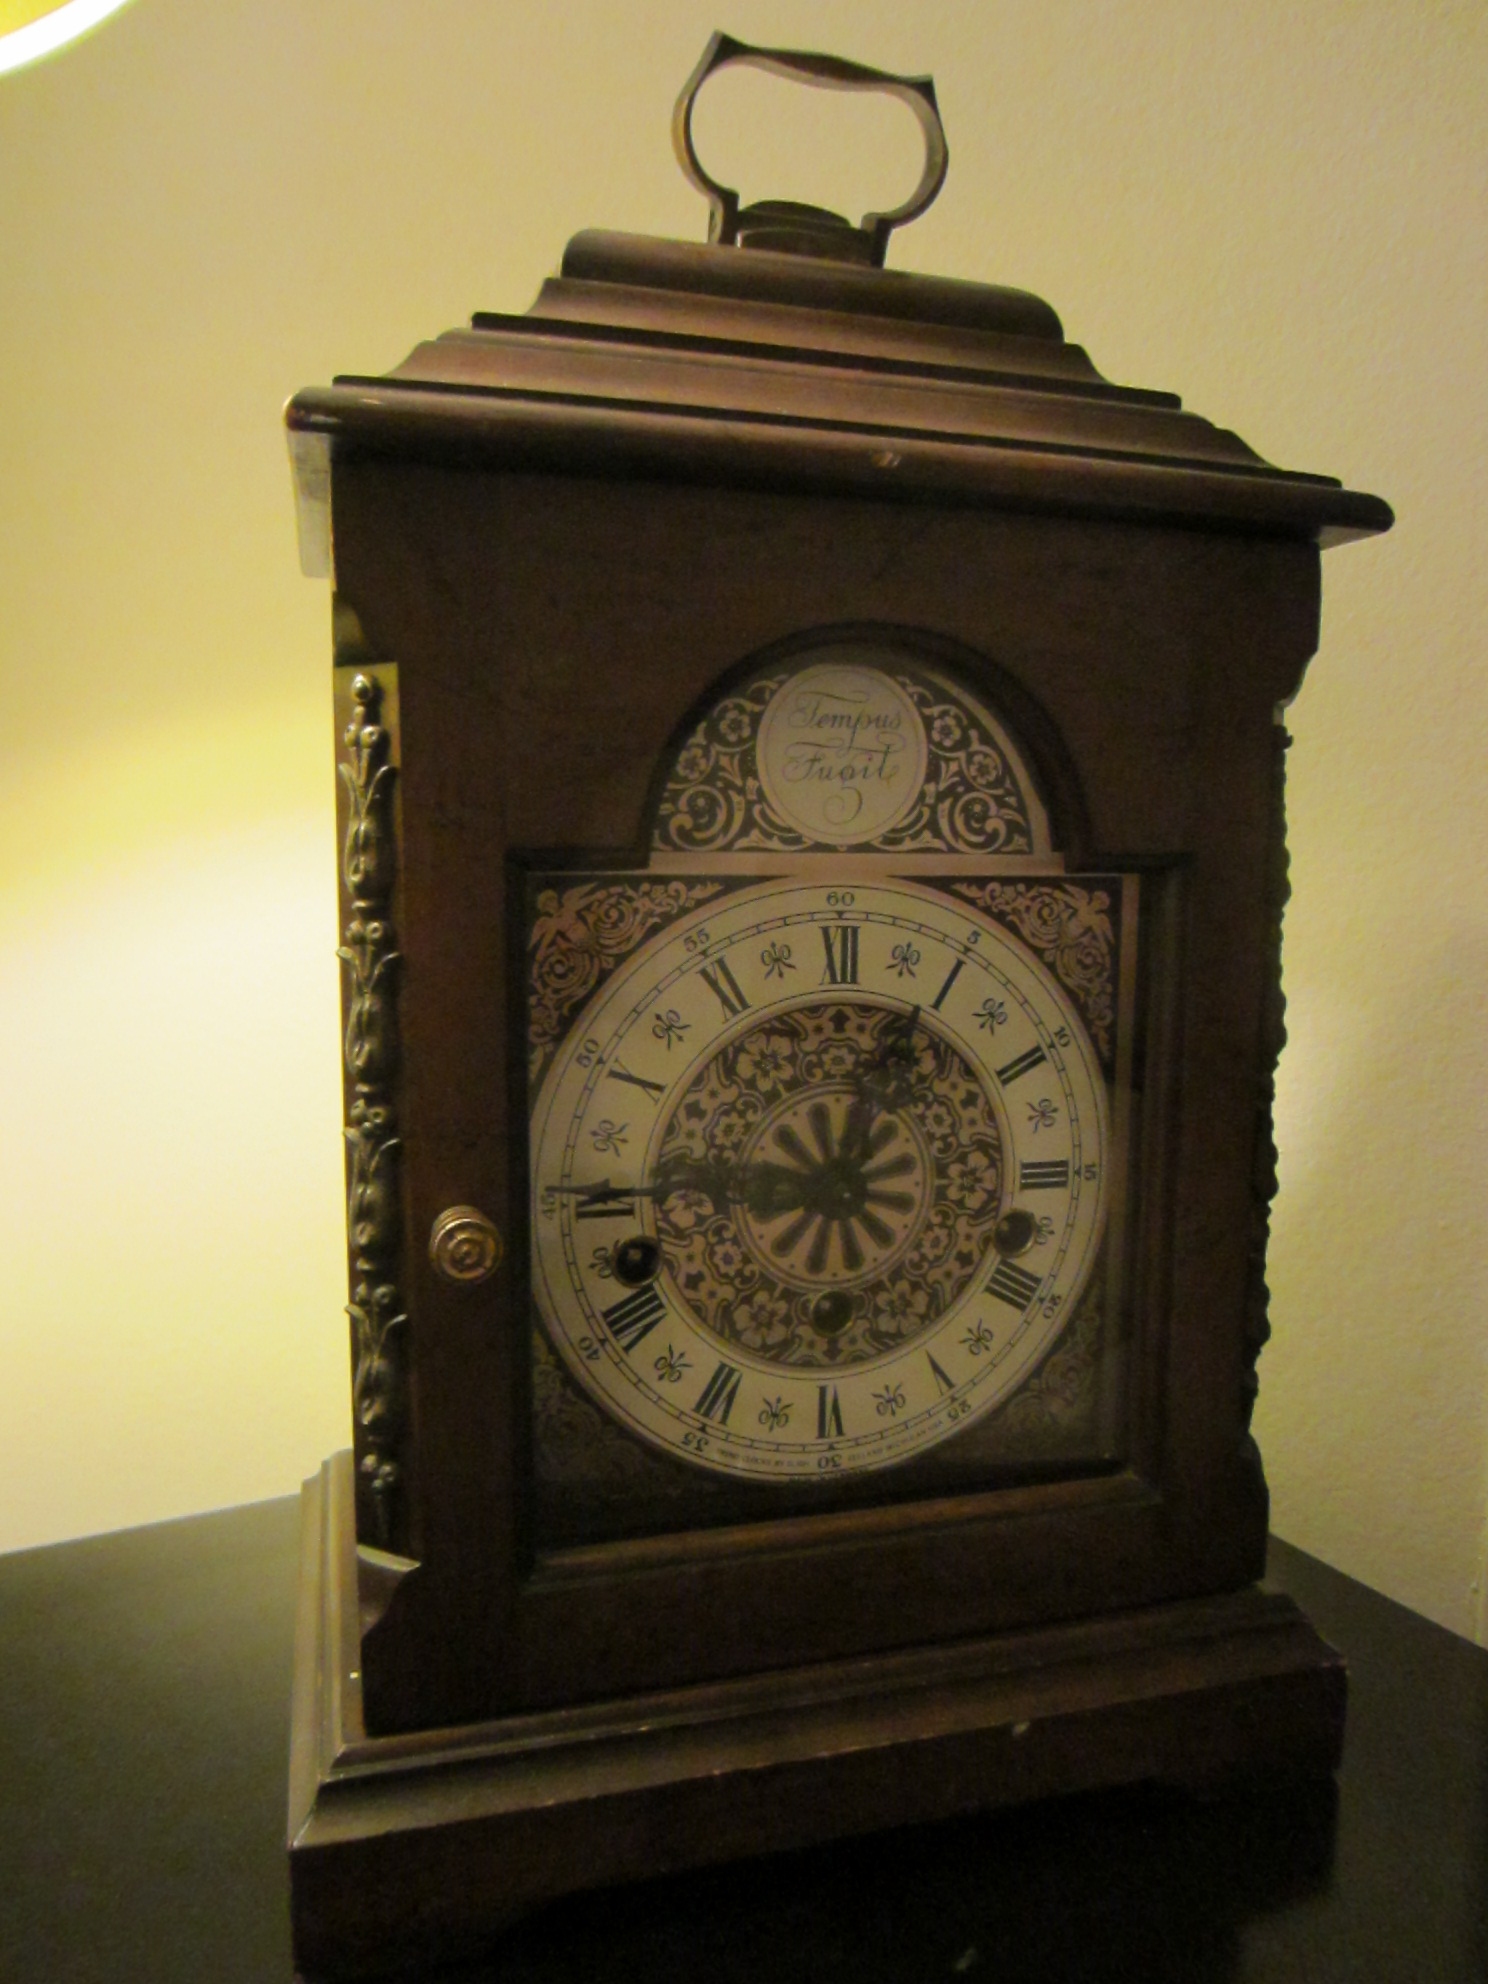 West Germany For Trend Bracket Mantle Clock For Sale ...